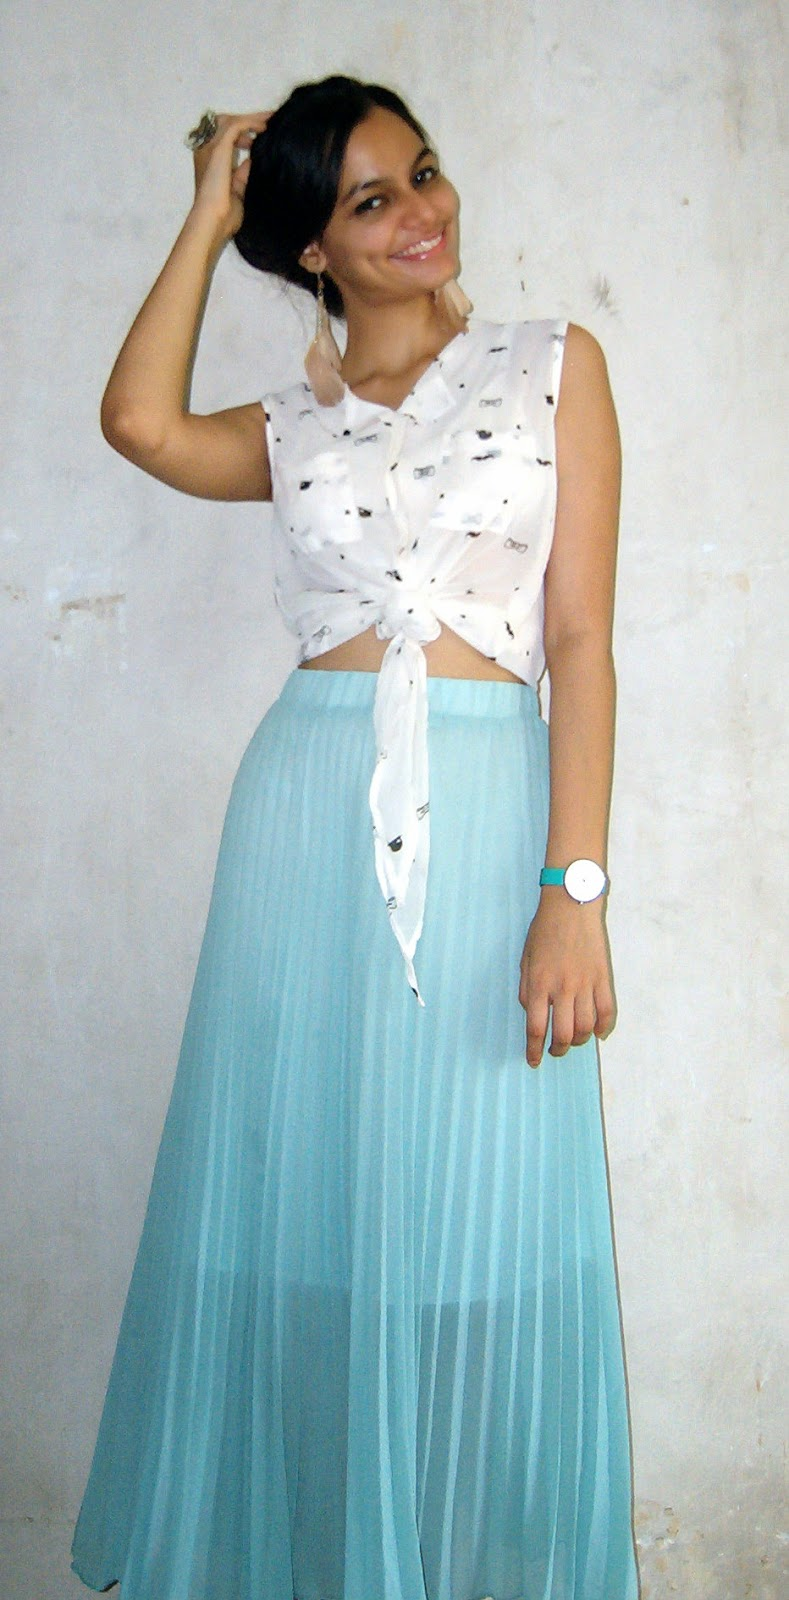 beach style, what to wear to a beach holiday, mumbai streetstyle, weekend dressing, pleated maxi skirt, knotted crop top, how to wear crop tops and maxi skirts, indian fashion blogger, fashion blog, look for less, holiday fashion